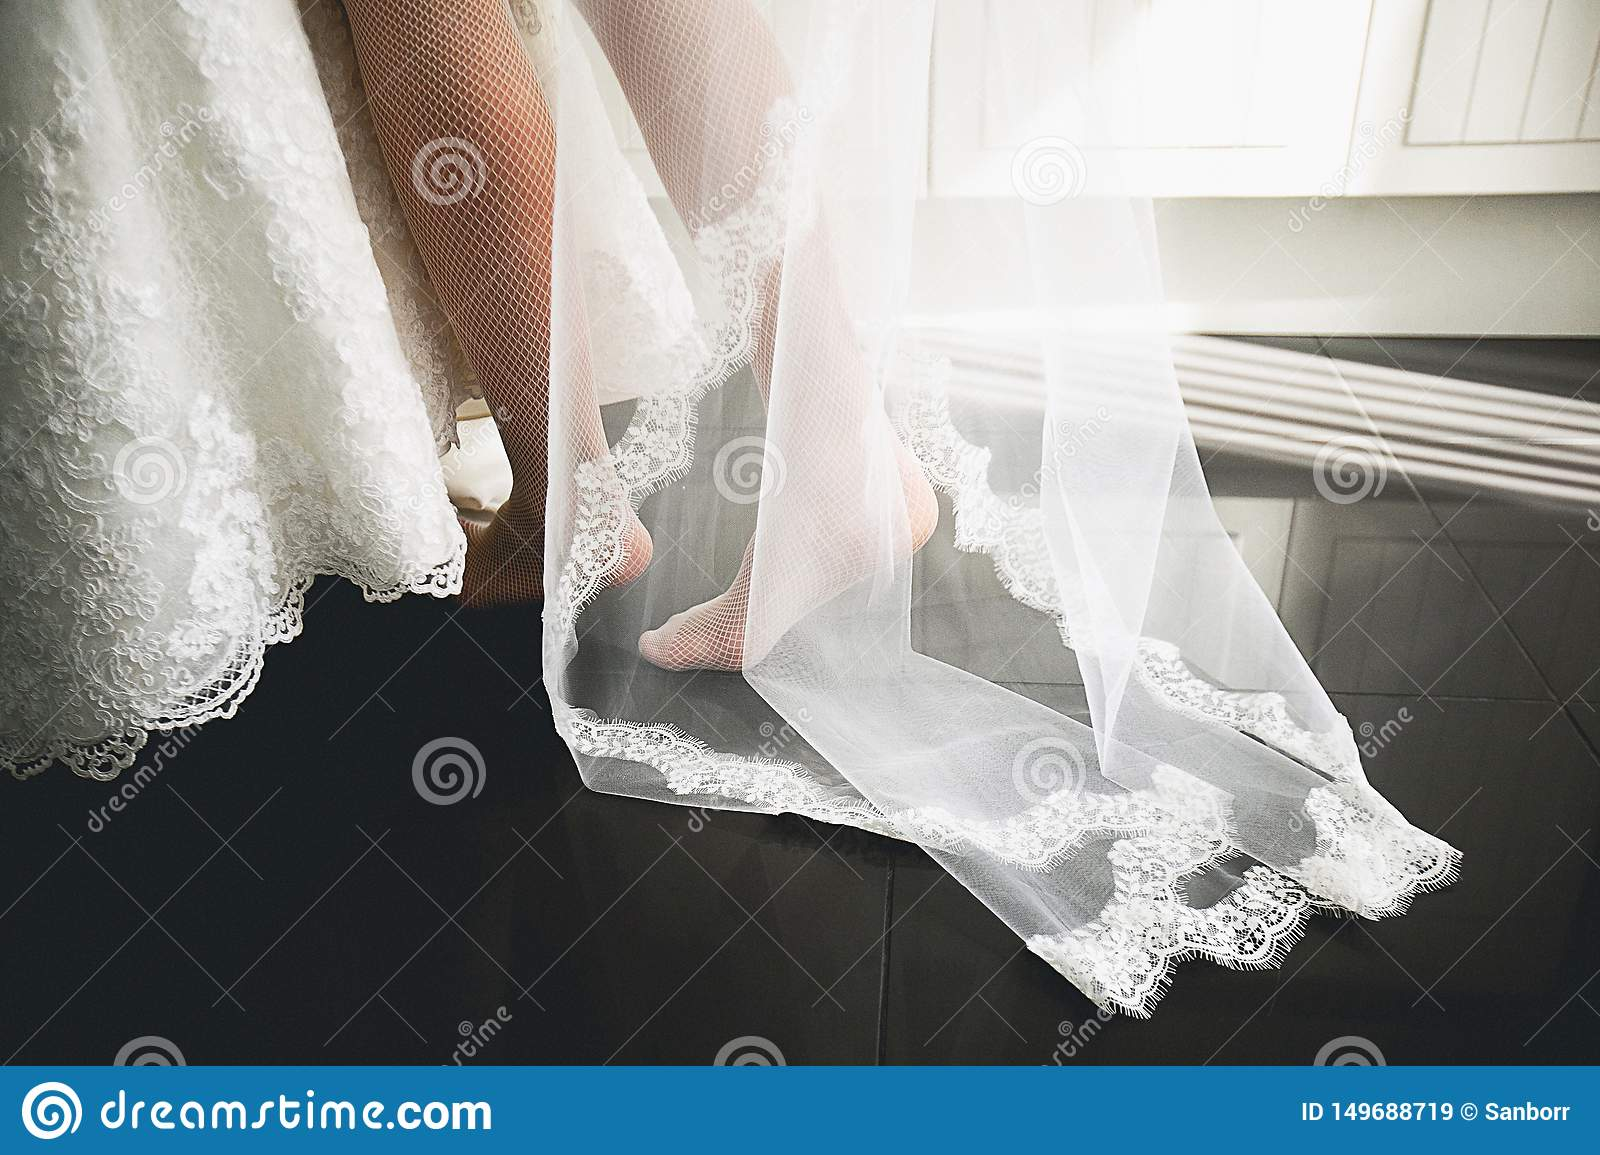 Clothes and legs of the bride close-up, against the black floor. A young woman takes a beautiful white openwork dress and a veil.